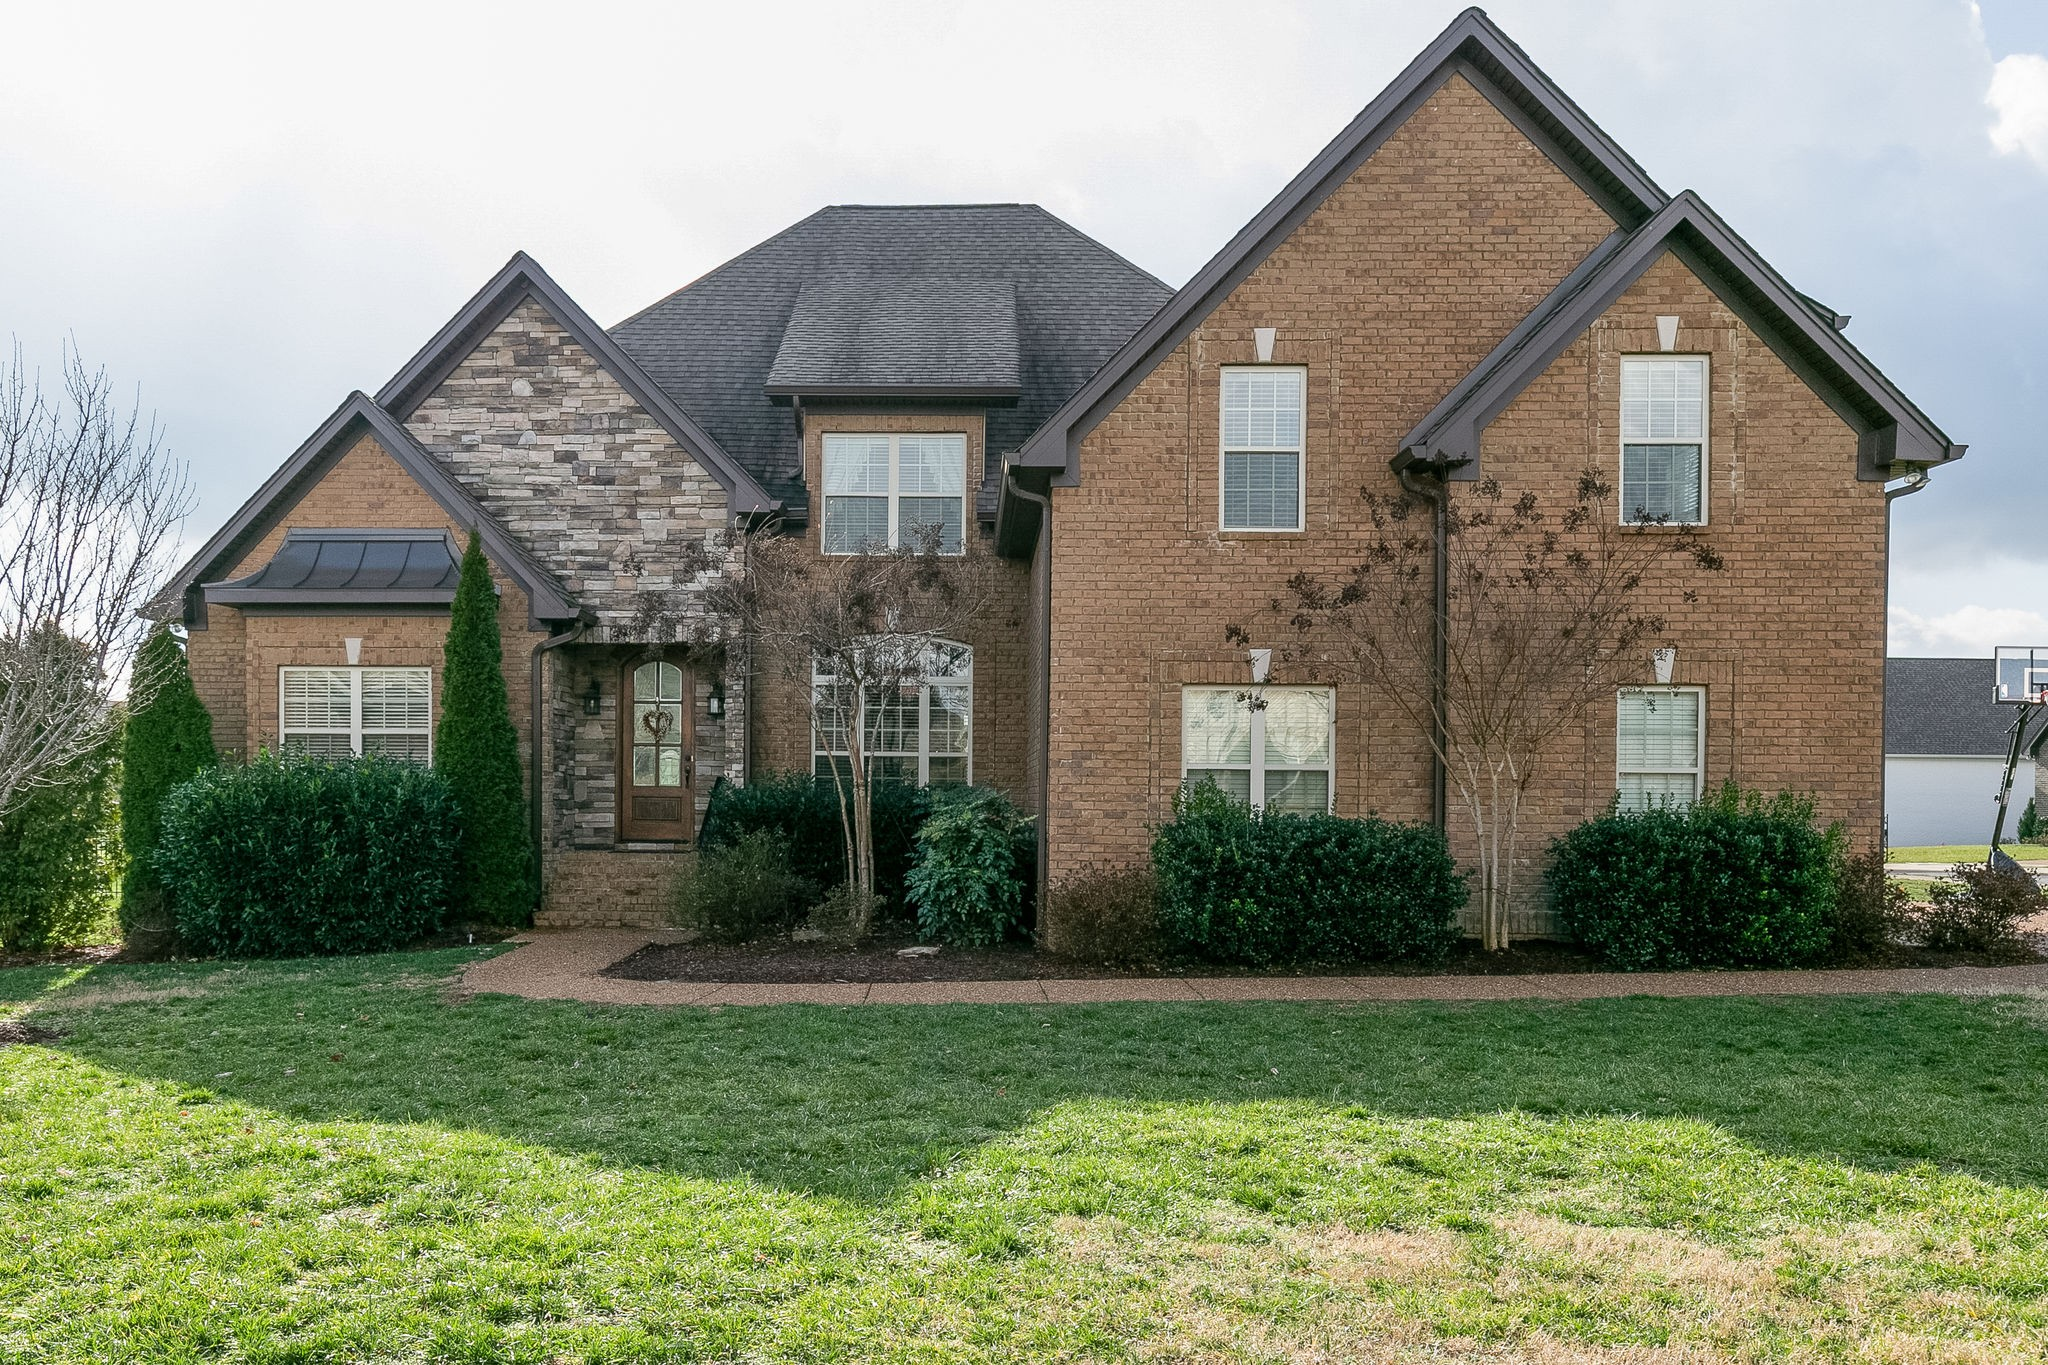 1789 Witt Way Dr, Spring Hill, TN 37174 - Spring Hill, TN real estate listing